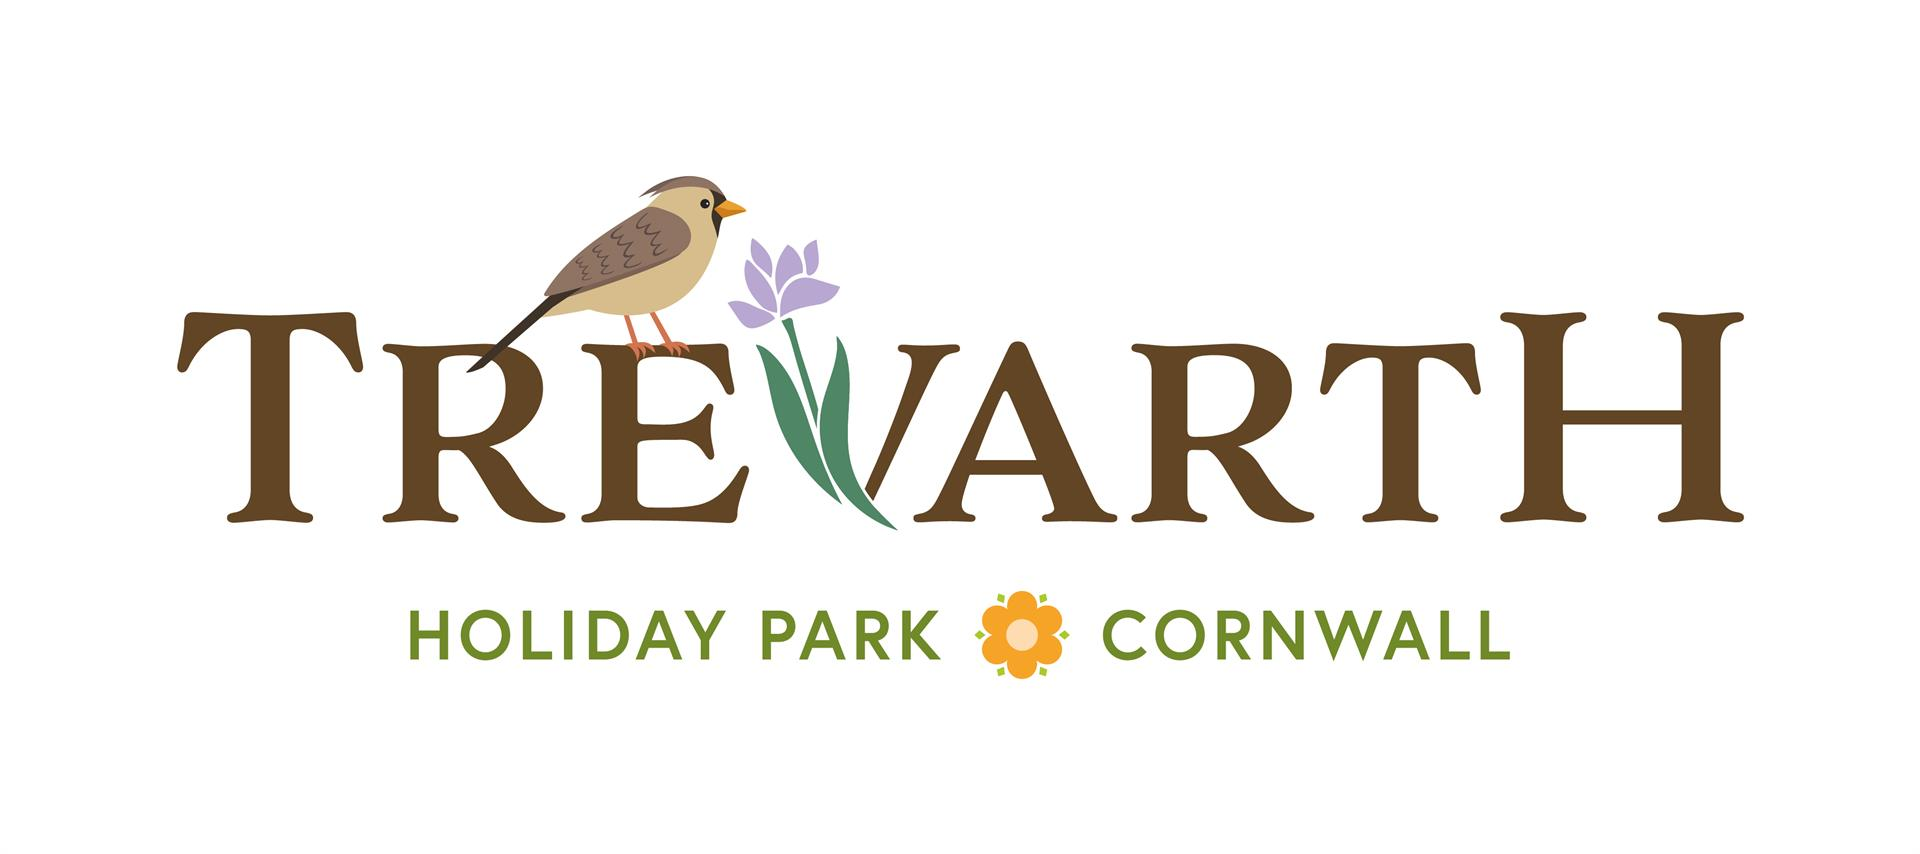 Trevarth Holiday Park